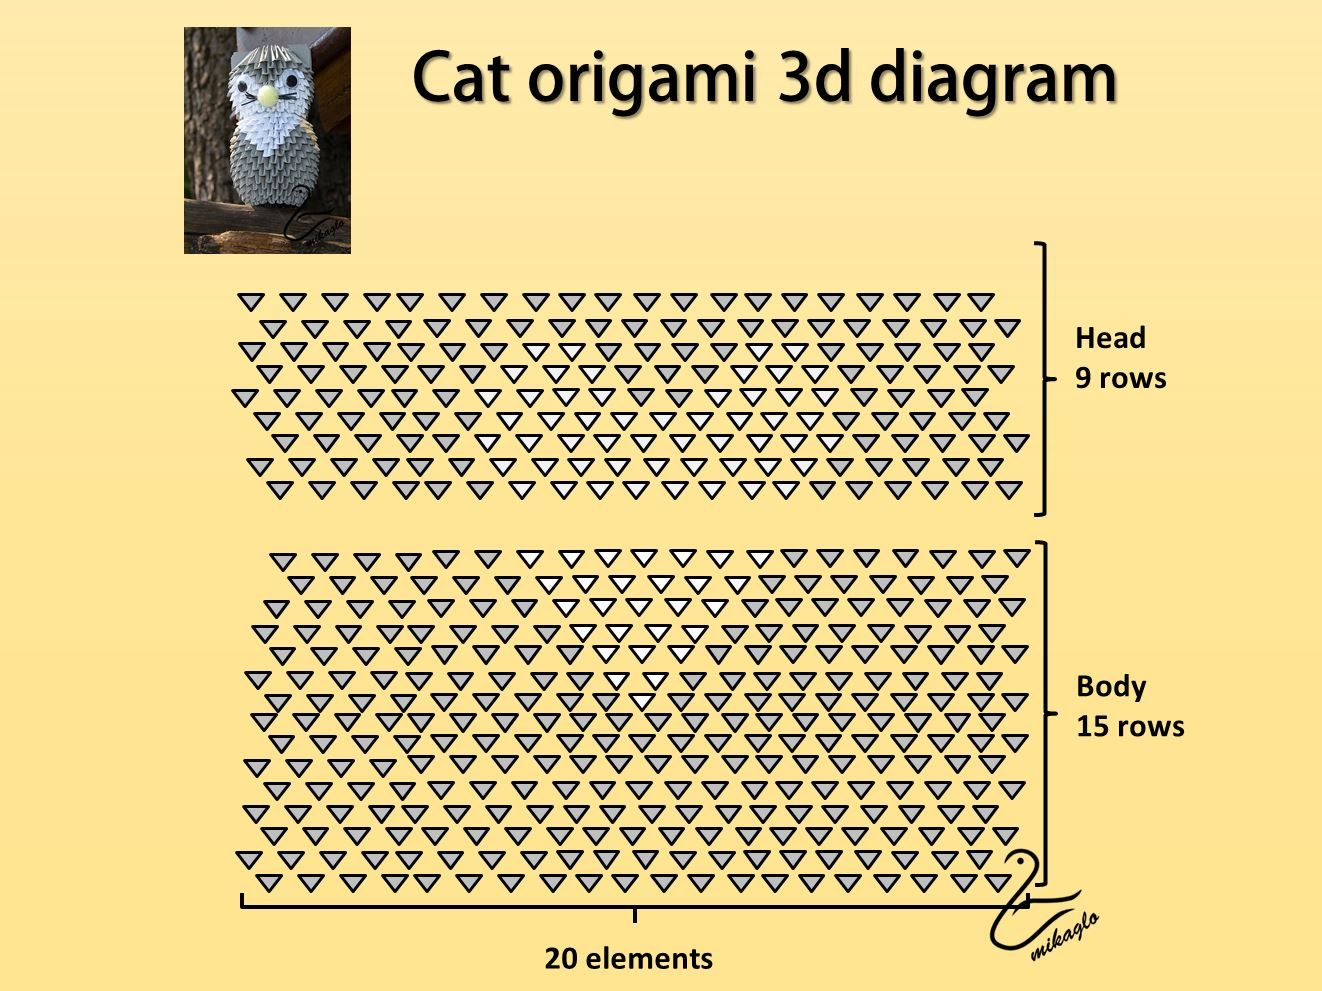 3d origami cat diagram 2 3d origami cats pinterest 3d 3d origami cat diagram reviewsmspy